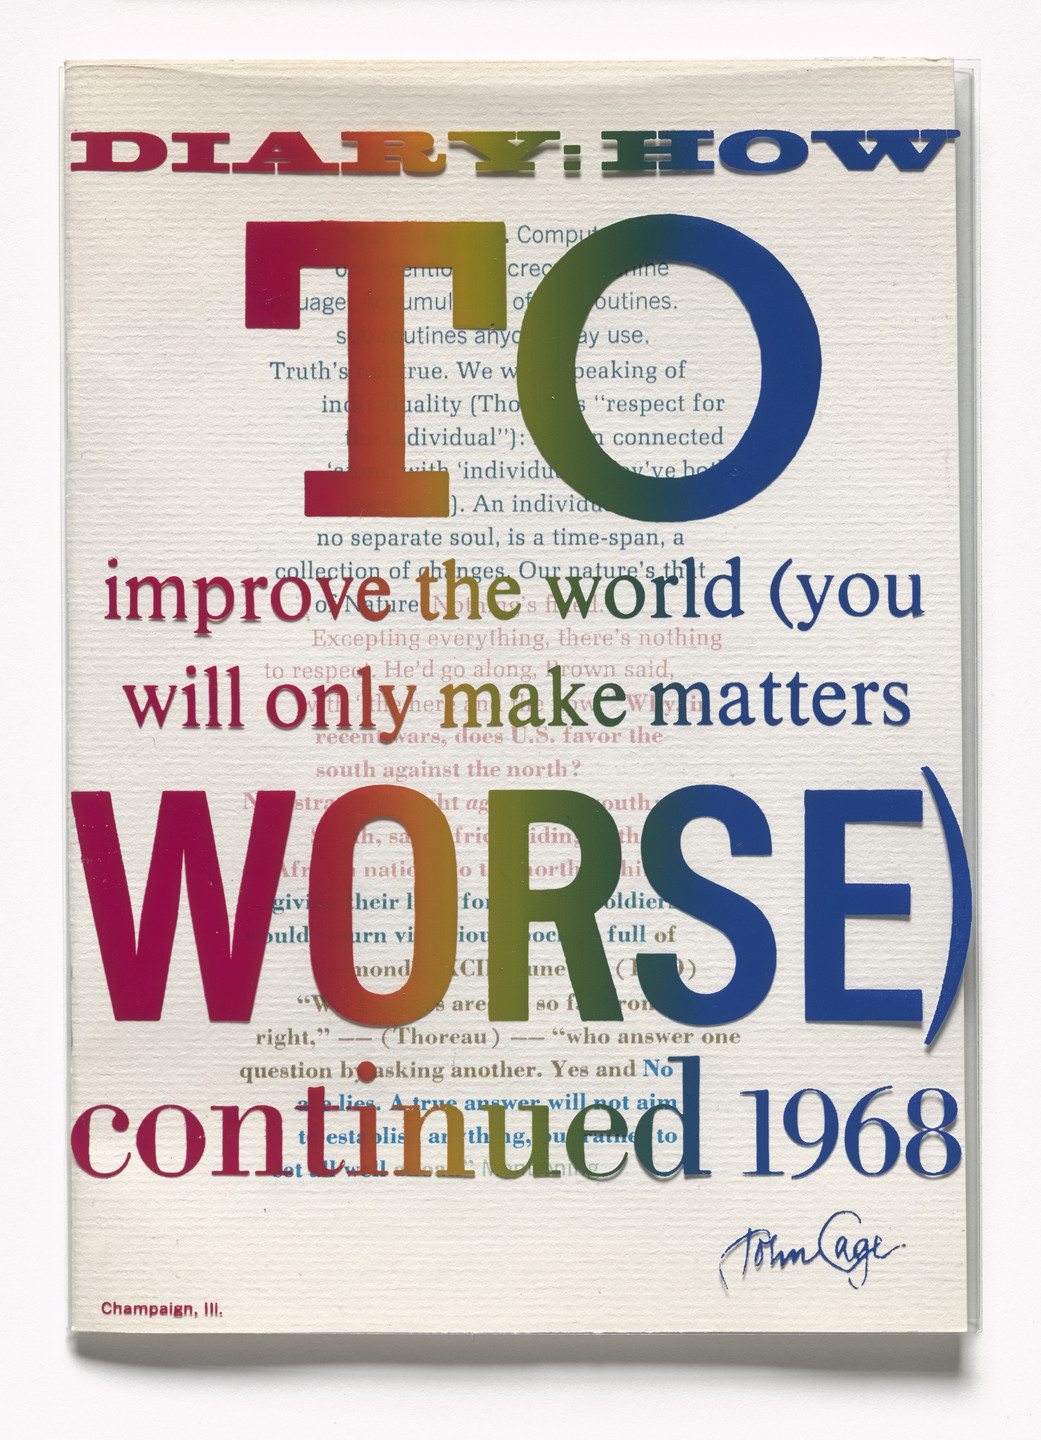 John Cage. Diary: How to Improve the World (You Will Only Make Matters Worse) continued 1968 from _S.M.S. No. 4 _. 1968